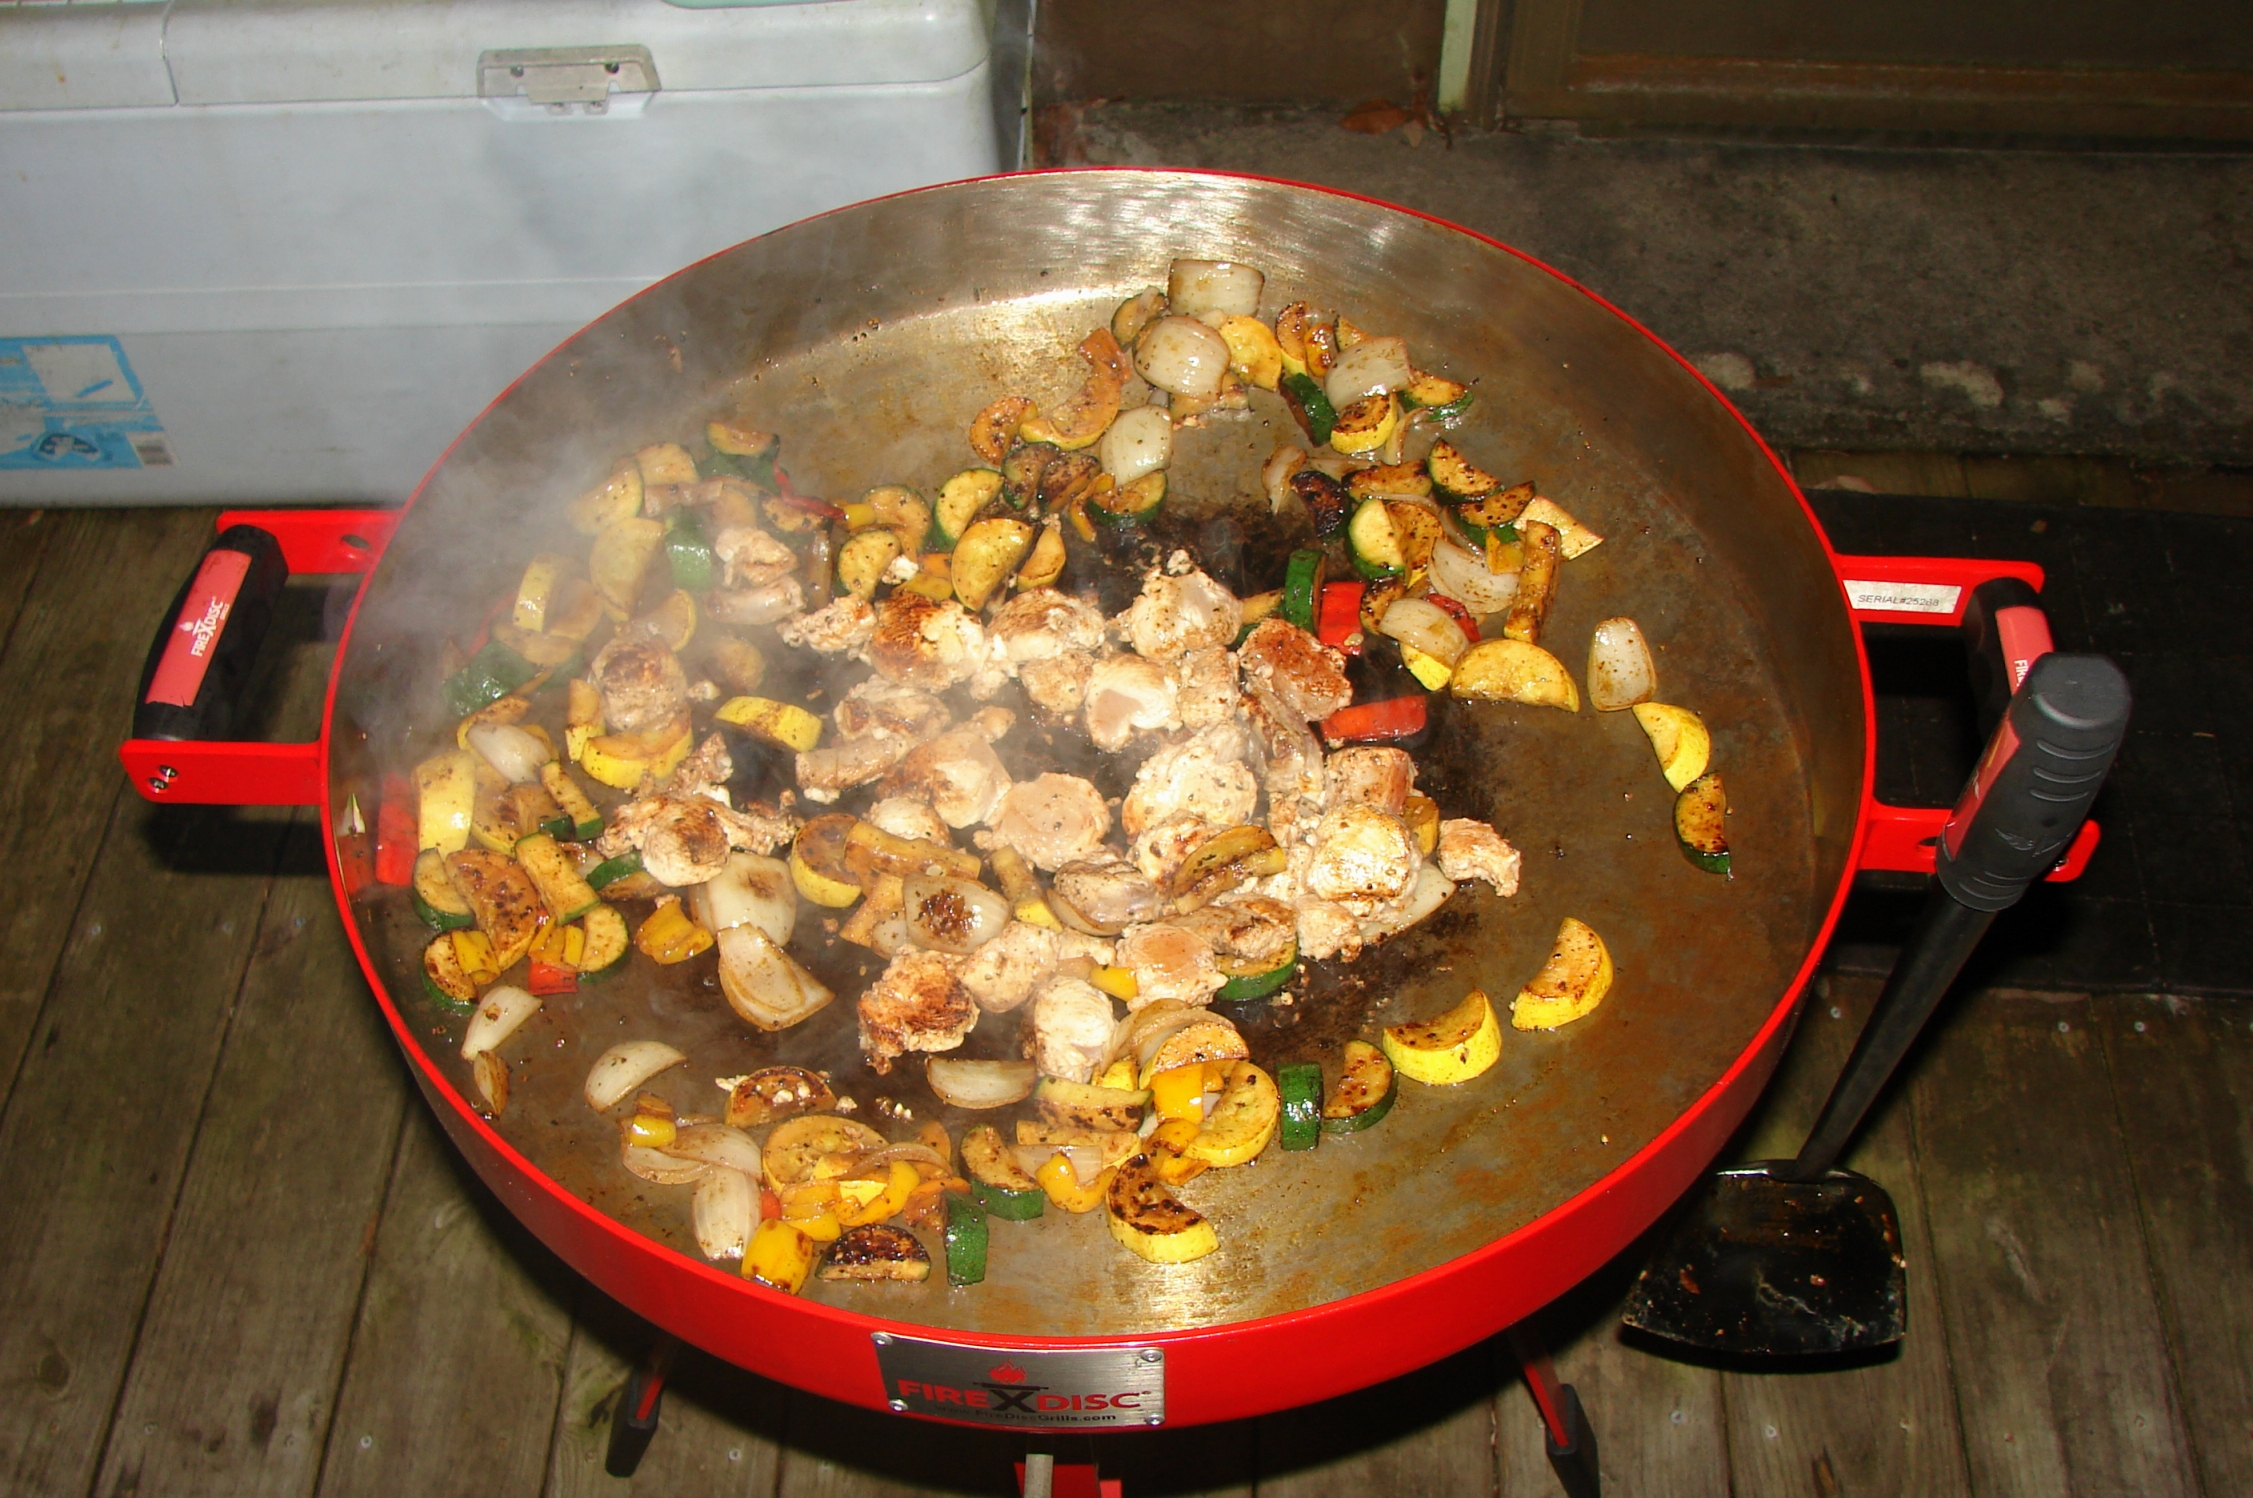 Chunks of wahoo fillets and vegetables sizzle in a FireDisc Cooker.